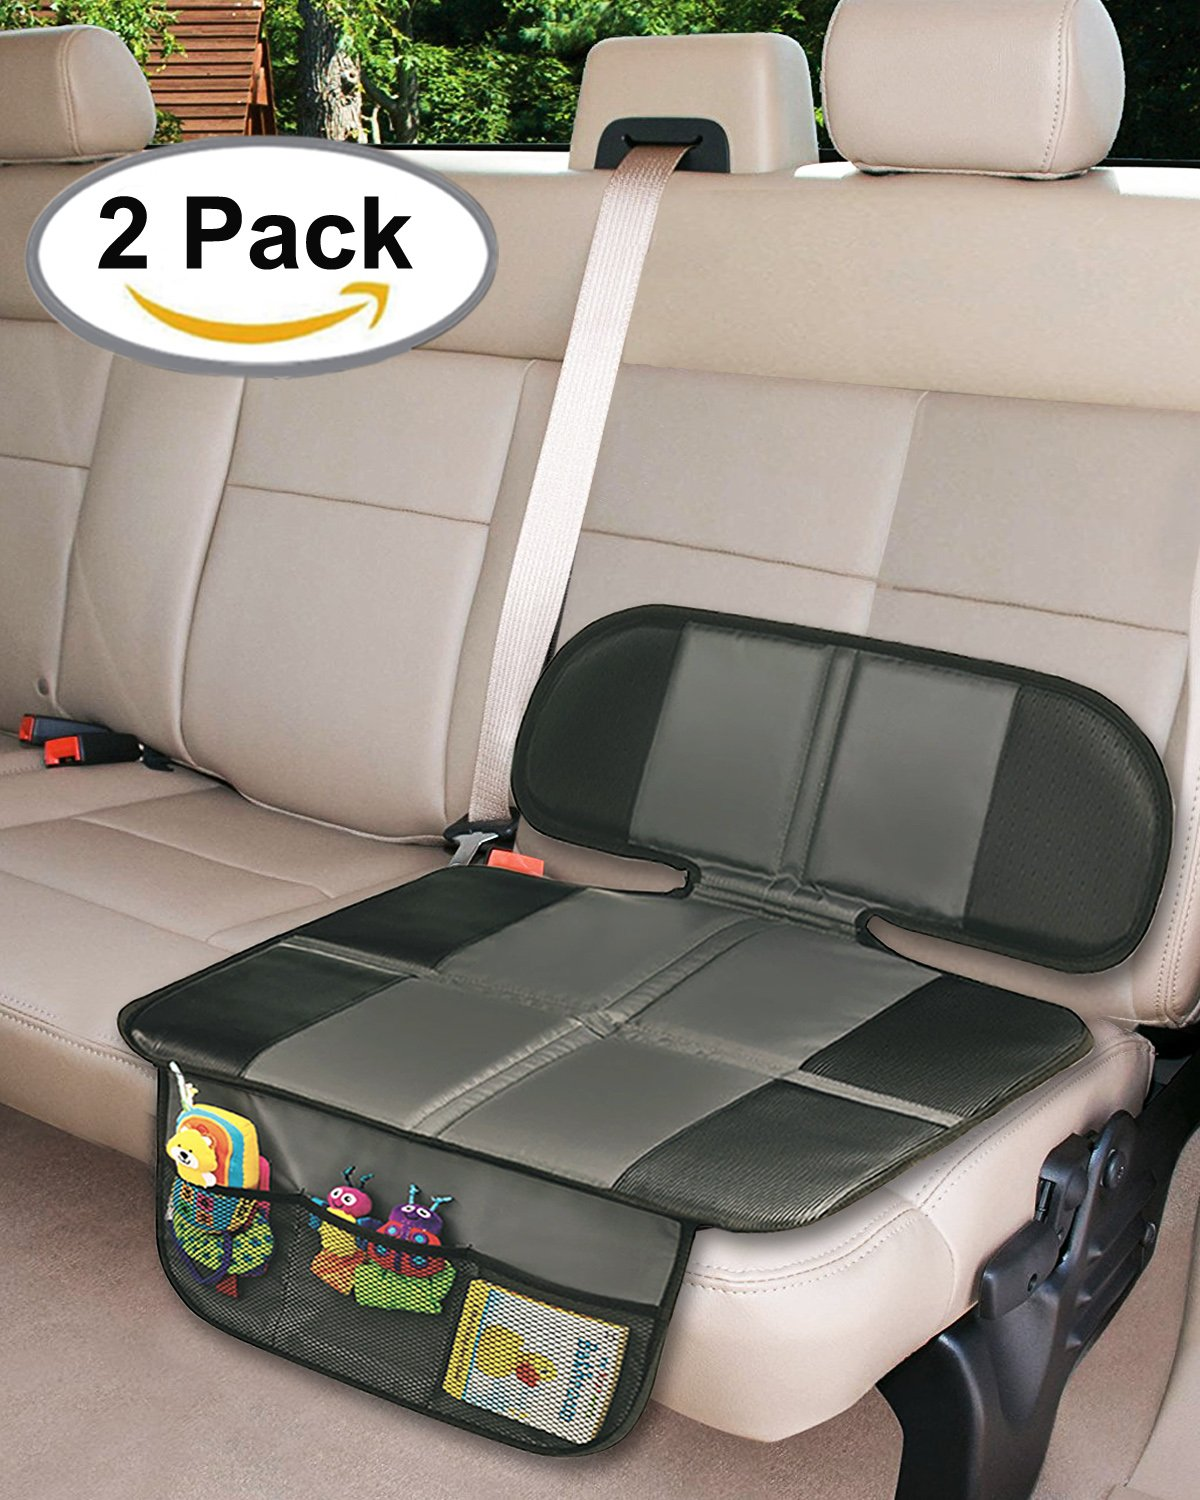 Car Seat Protector, 2PC Seat Covers Extra Storage Pocket Thickest Padding Protection for Child & Baby Cars Seats, Dog Mat, Non Slip and Waterproof Protects Automotive Vehicle Upholstery